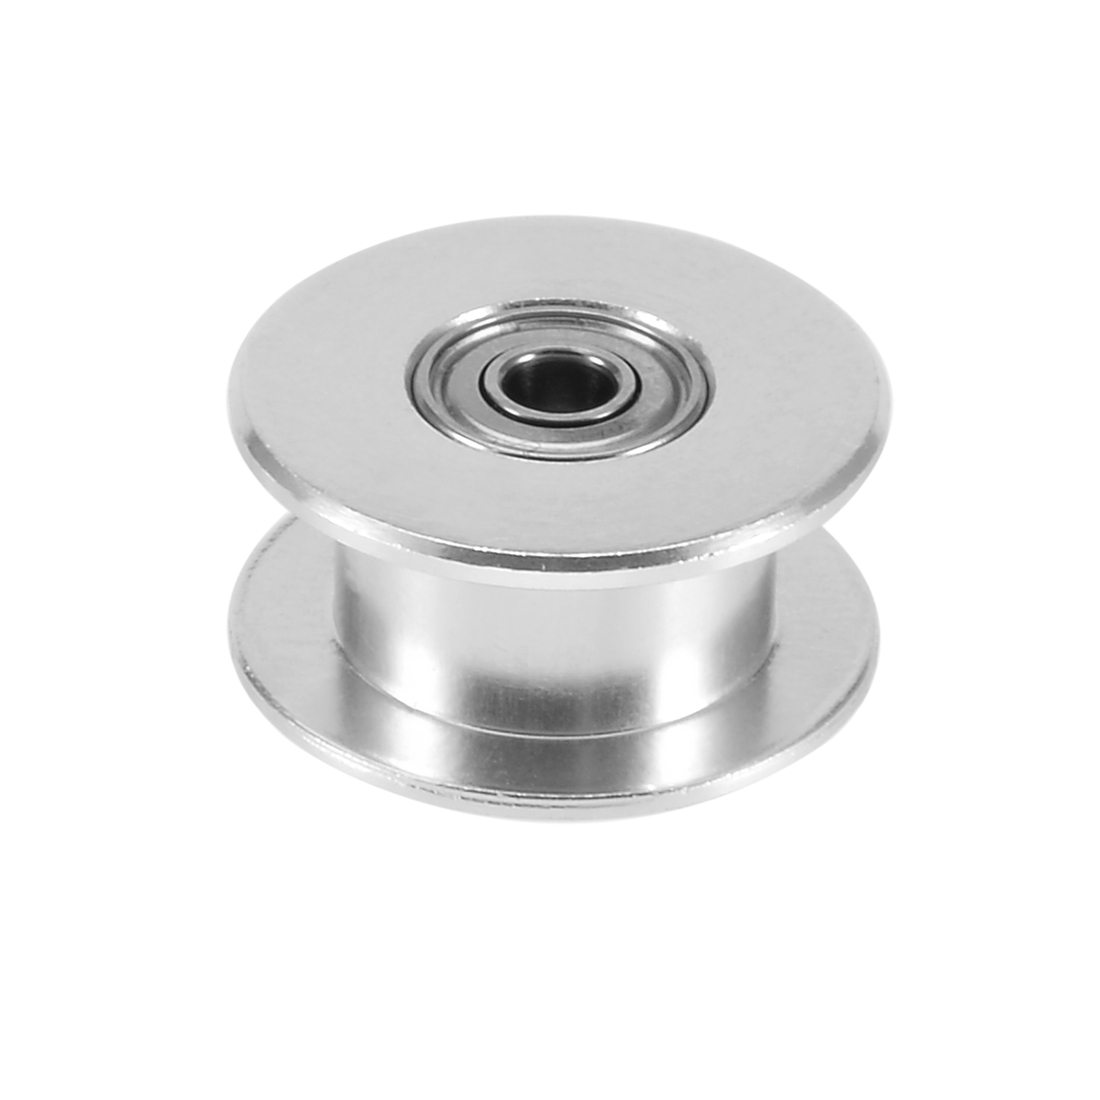 Aluminum GT2 3mm Bore Toothless Timing Belt Idler Pulley Flange with Ball Bearings for 3D Printer